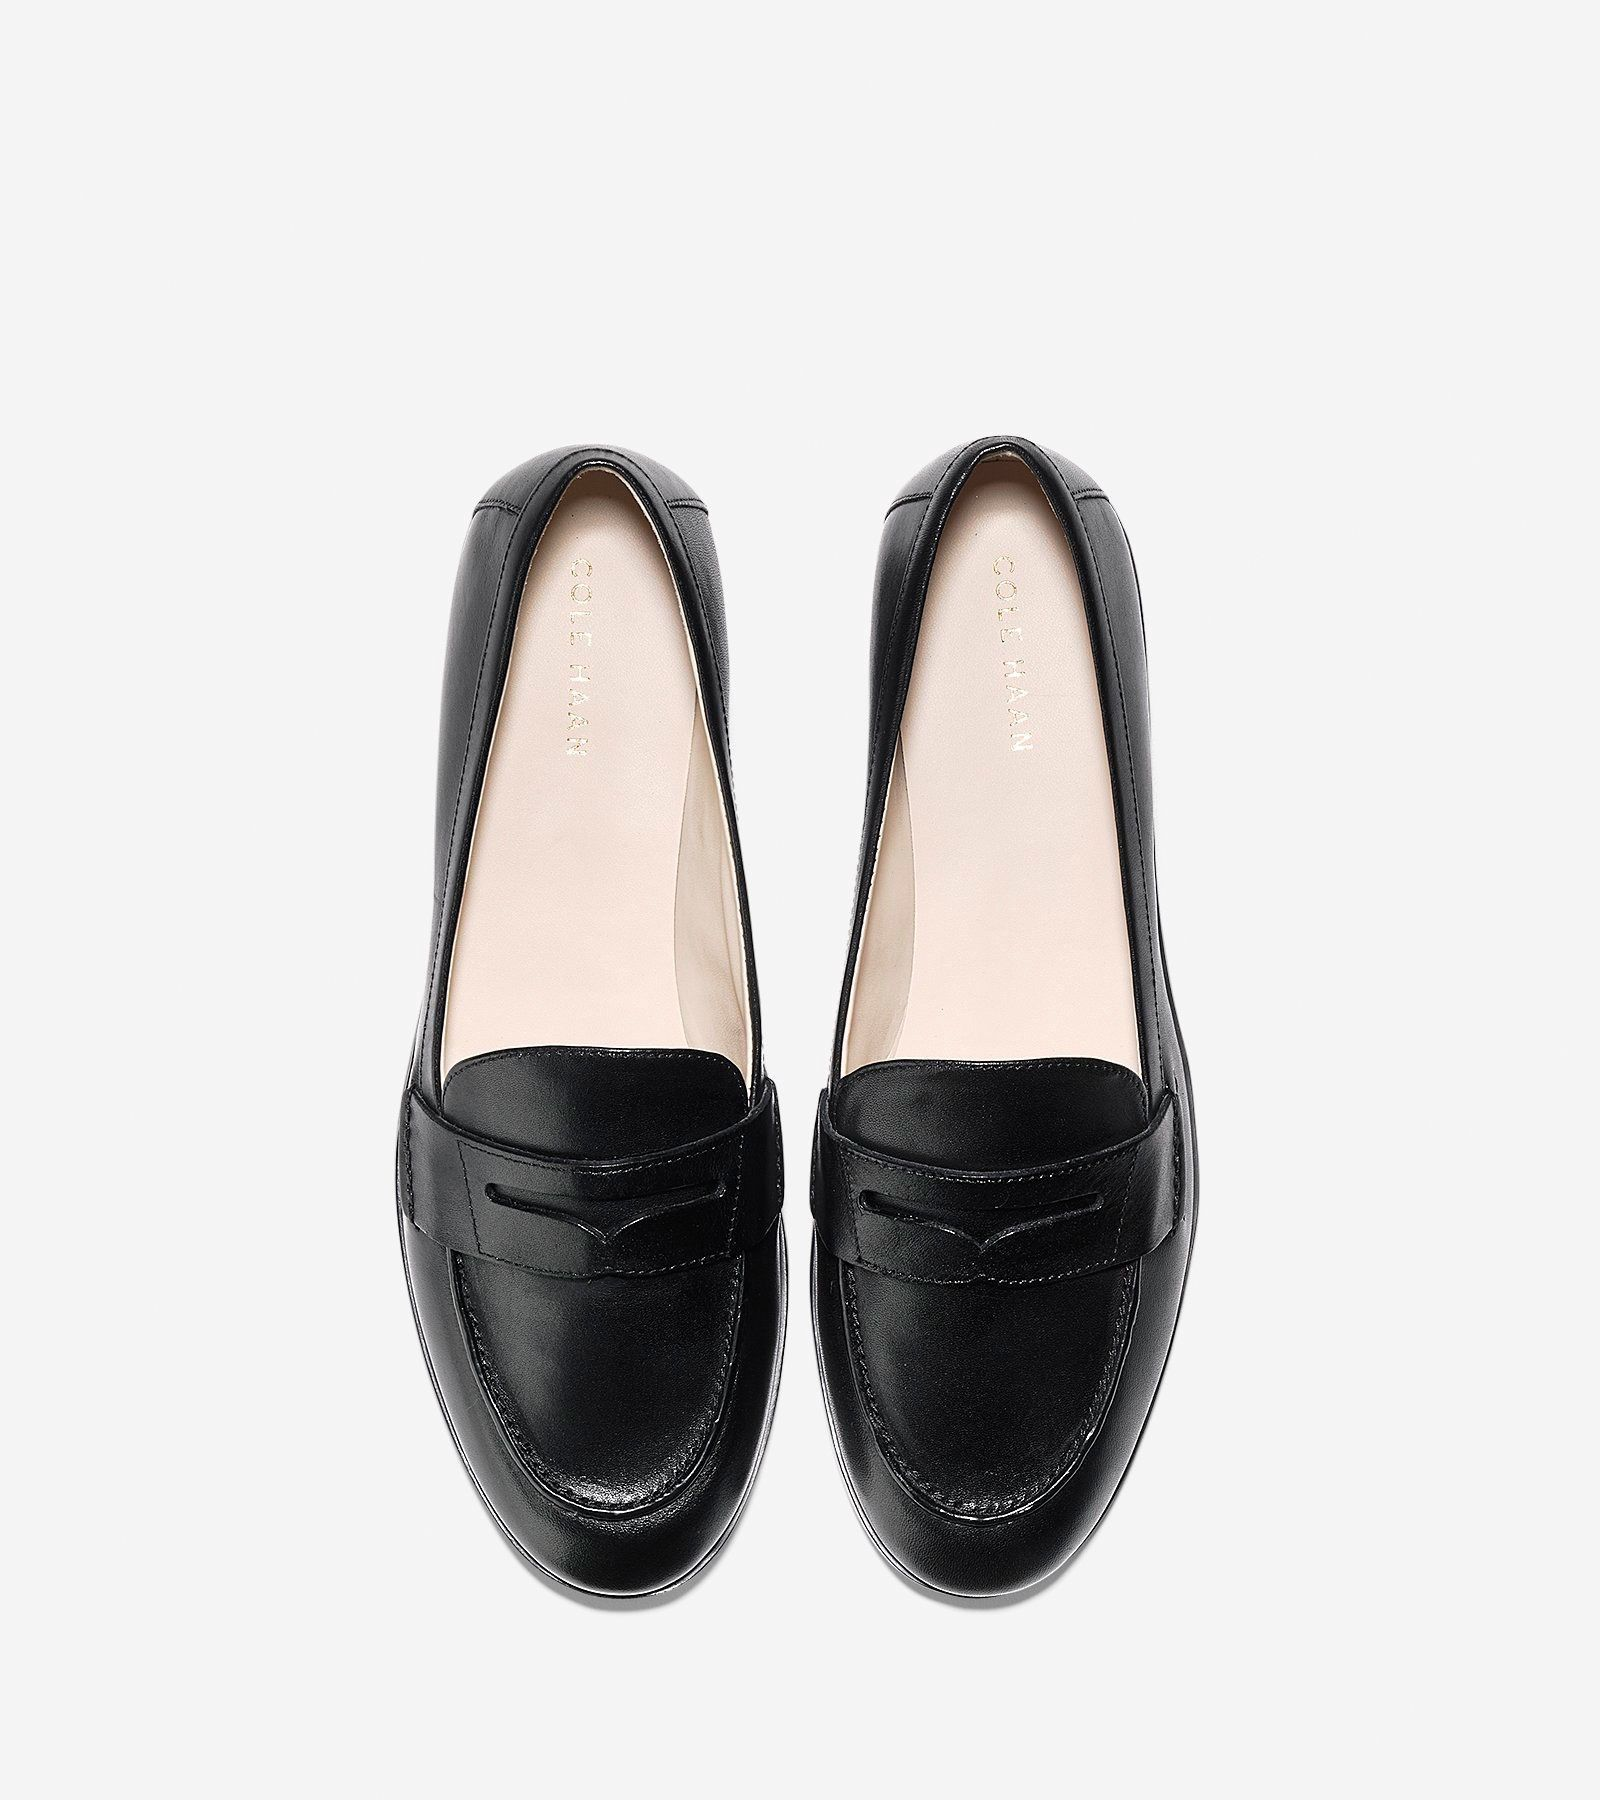 3150803224b Cole Haan Women s Pinch Grand Penny Loafer - Black 7.5 B Medium